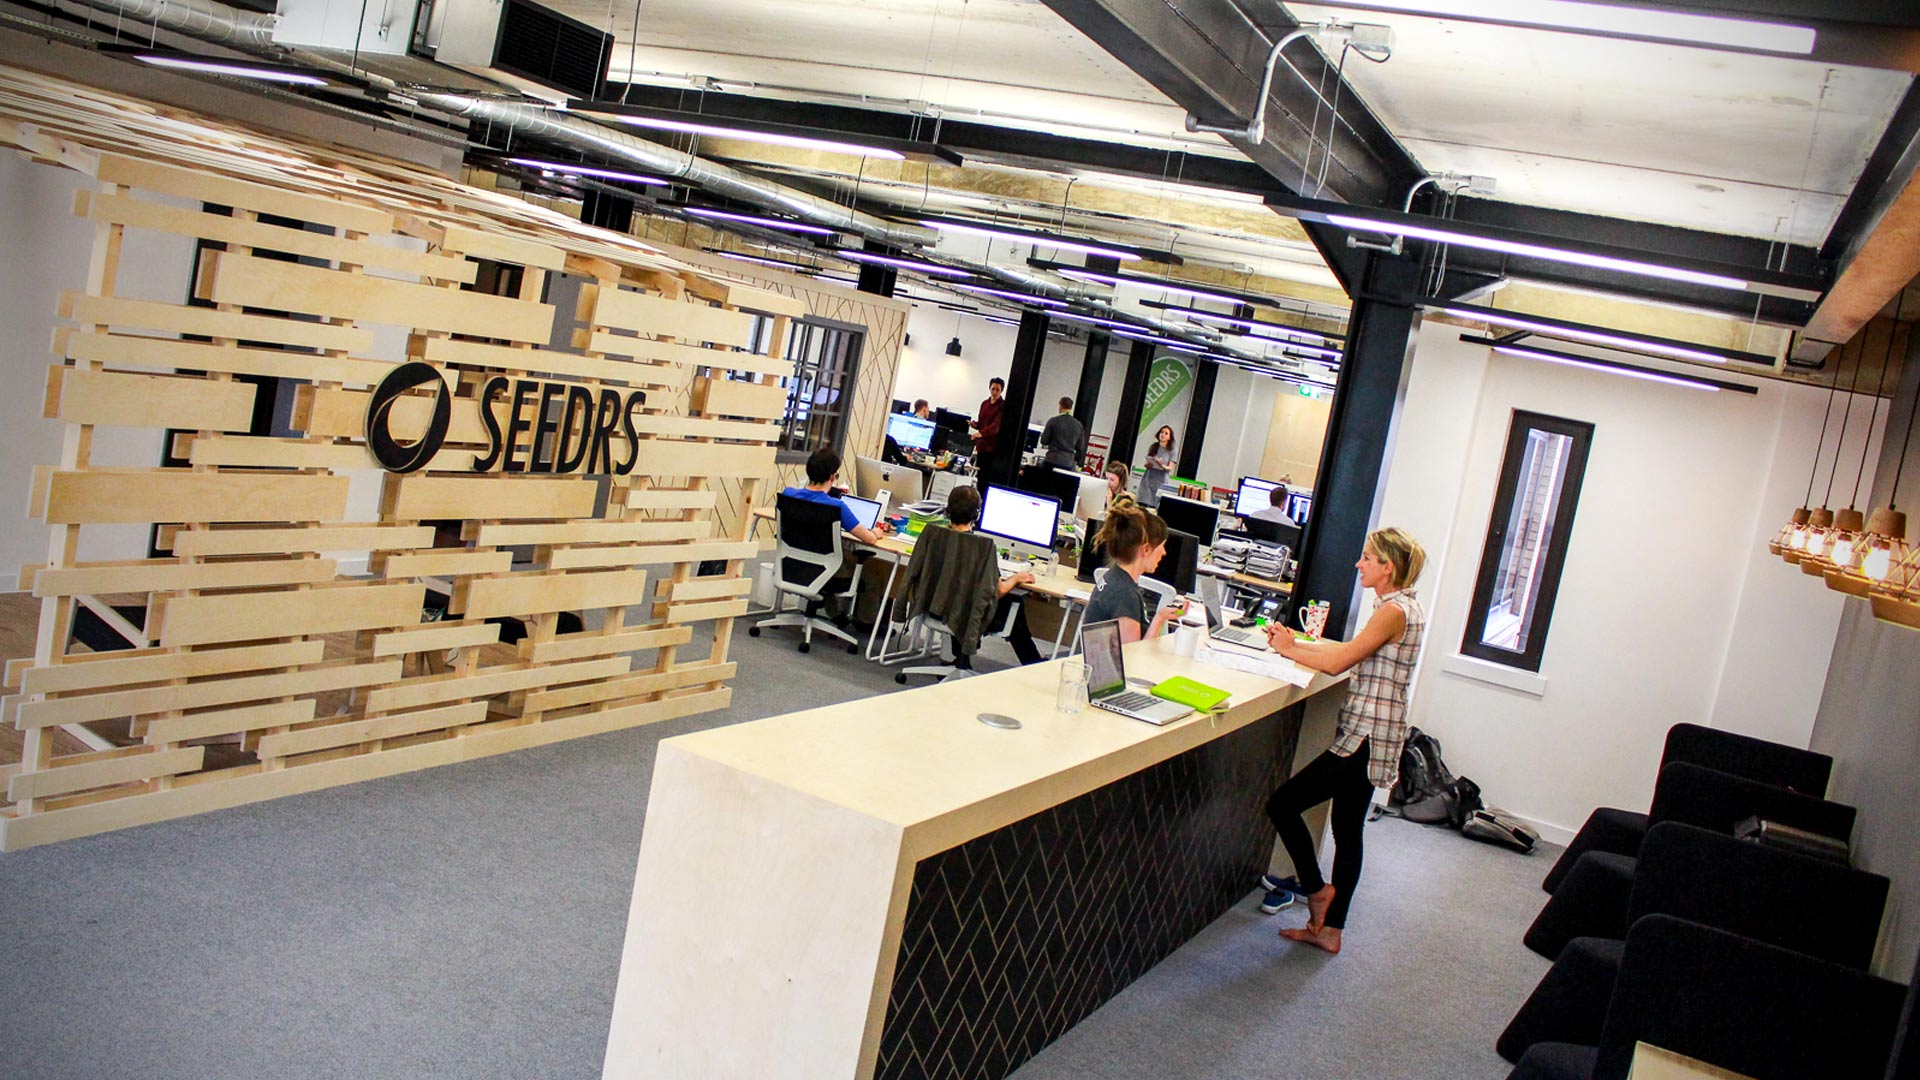 seedrs-office-design hot desk area.